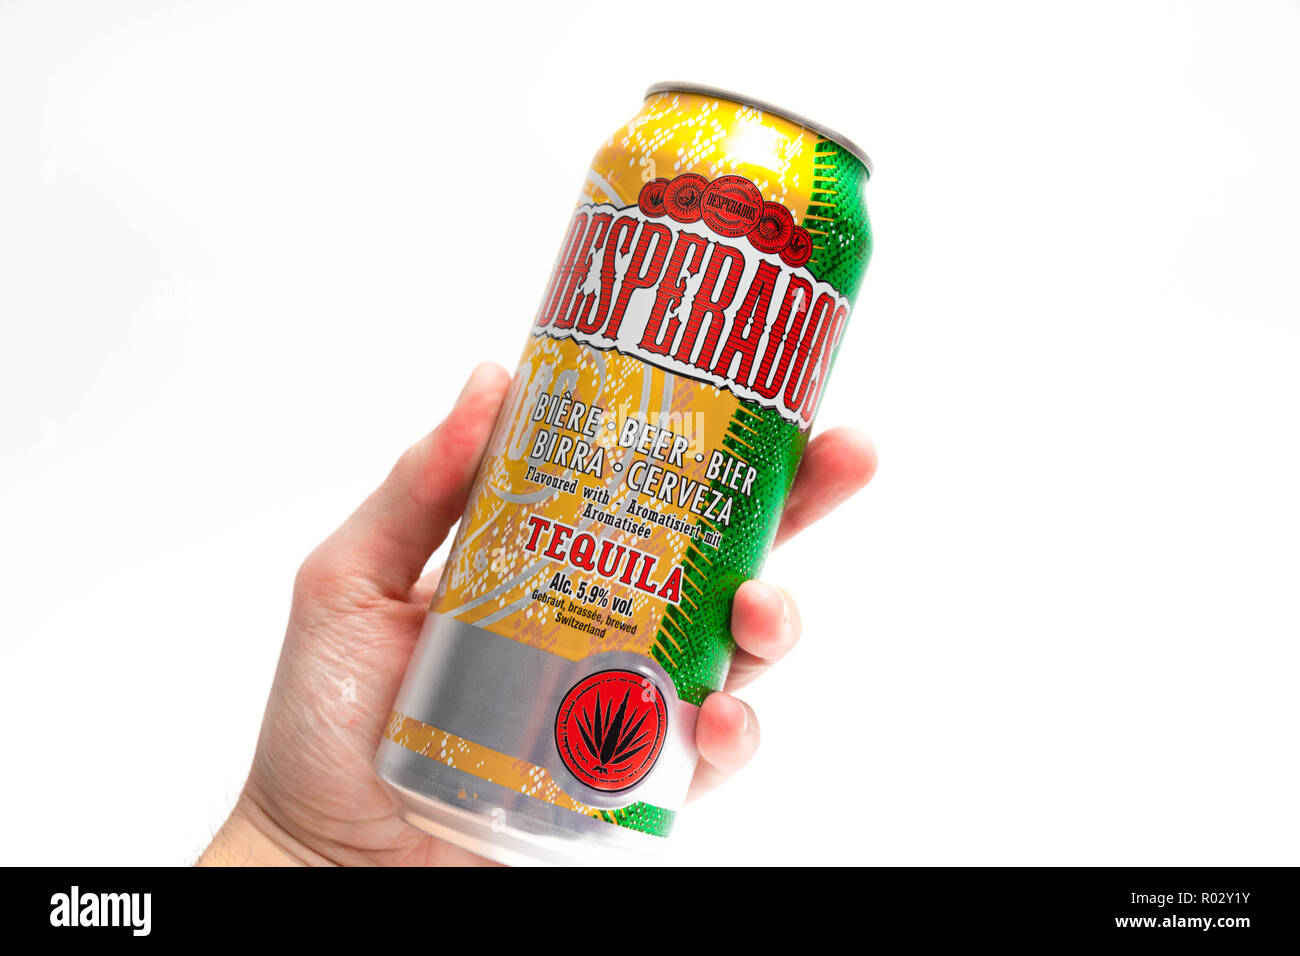 Desperados Tequila Beer High Resolution Stock Photography And Images Alamy